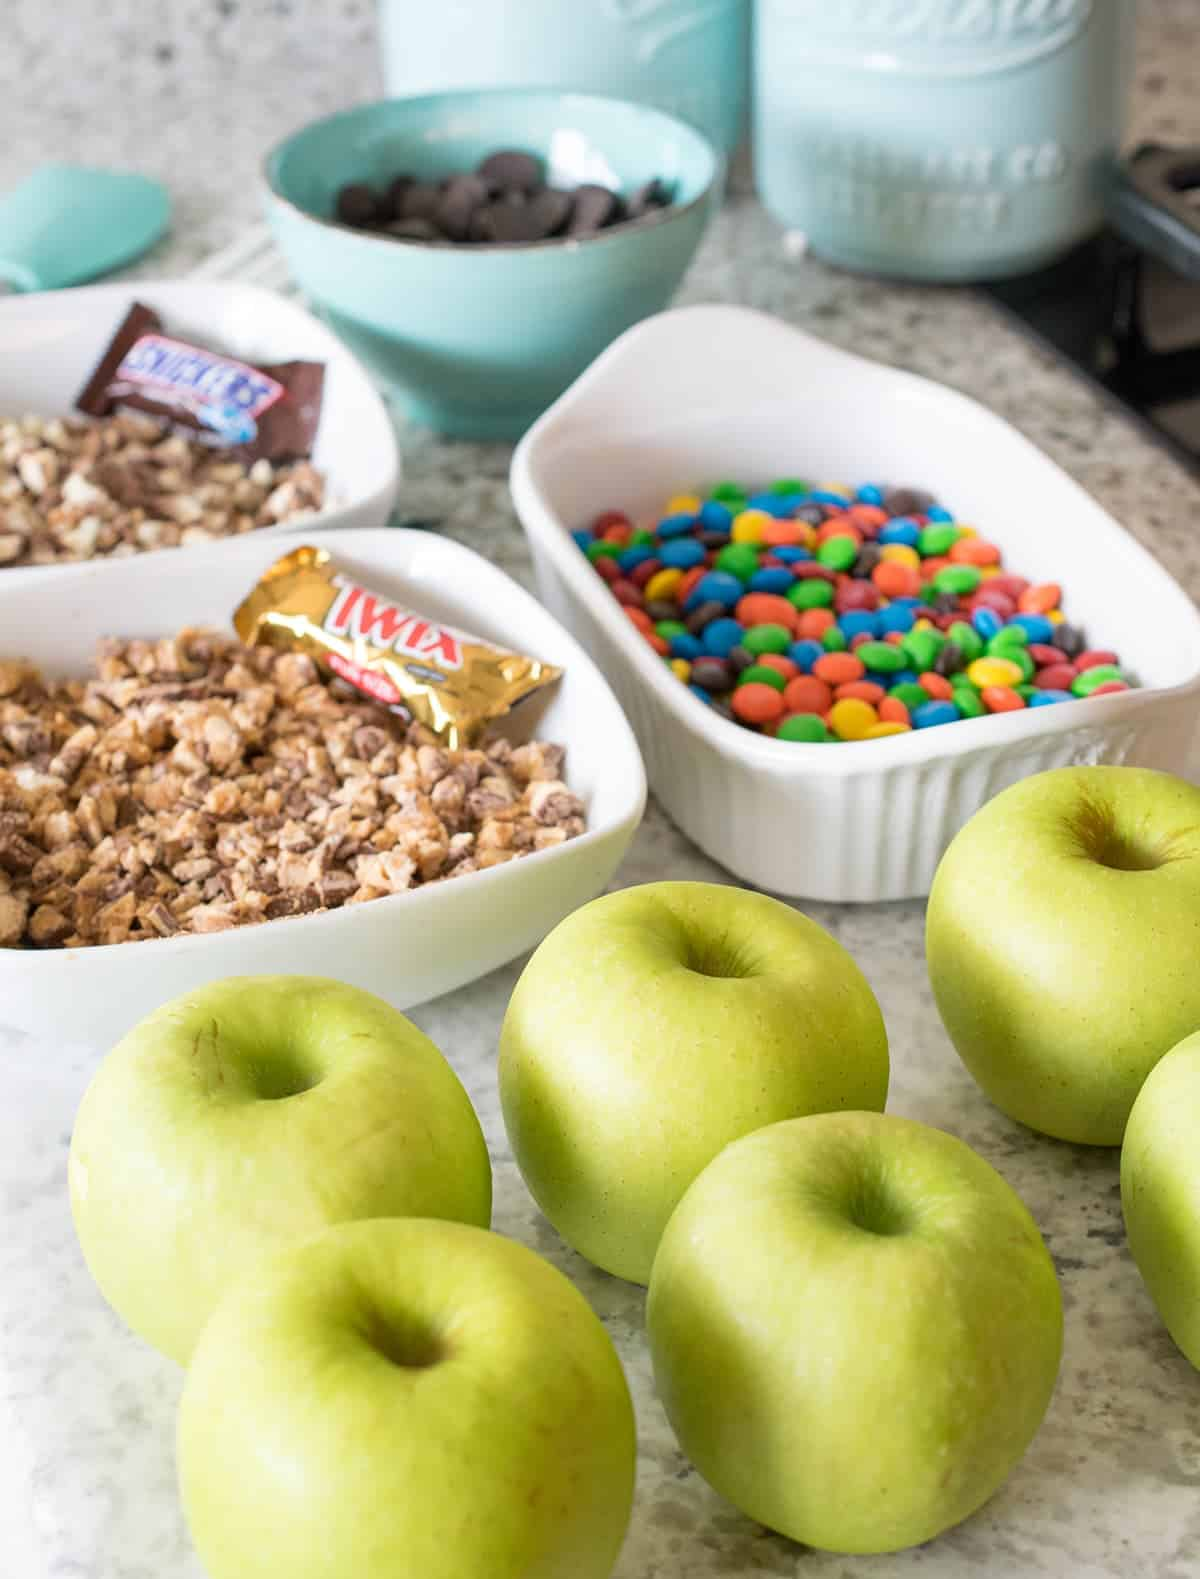 Candy apple rolling station with fresh green apples, assorted baking dishes with m&m's, crushed twix candy bars, snickers, and chocolate chips